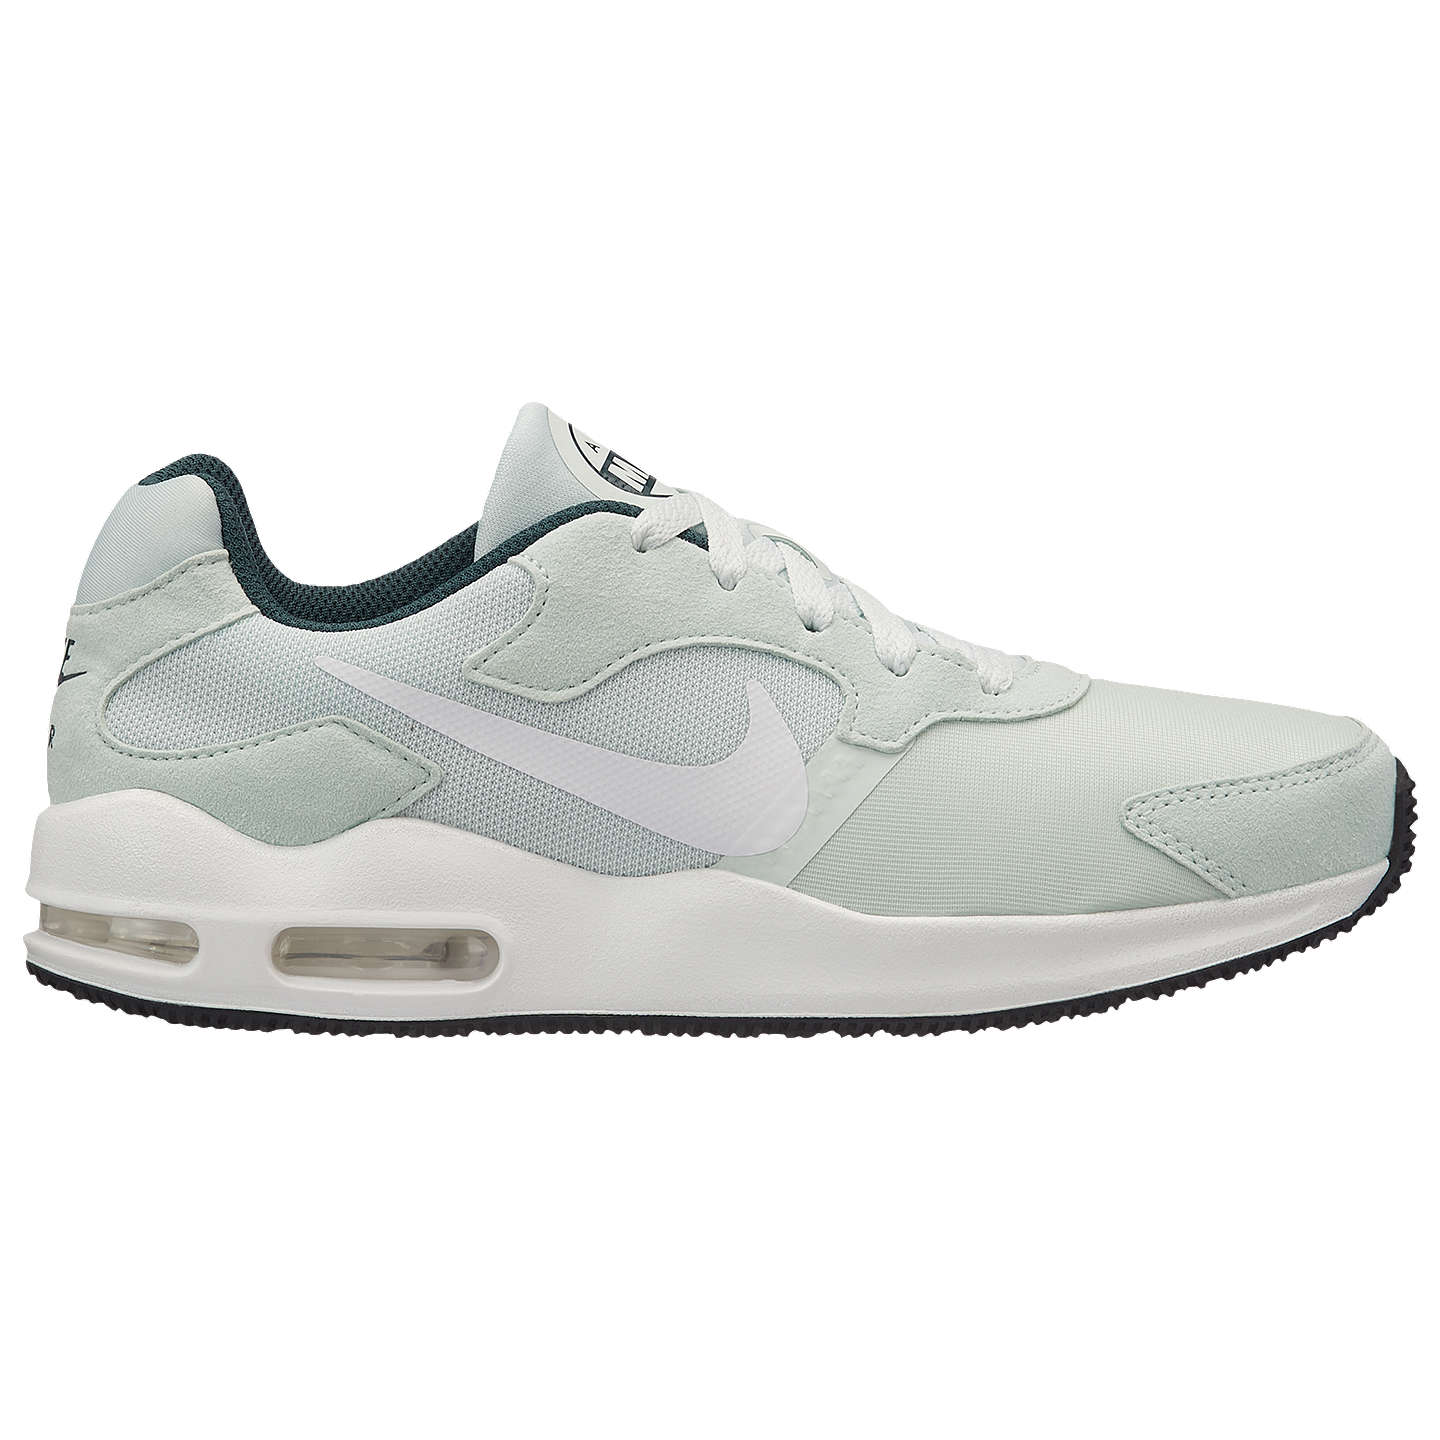 Nike Air Max Guile Women's Trainers Barley Grey at John Lewis